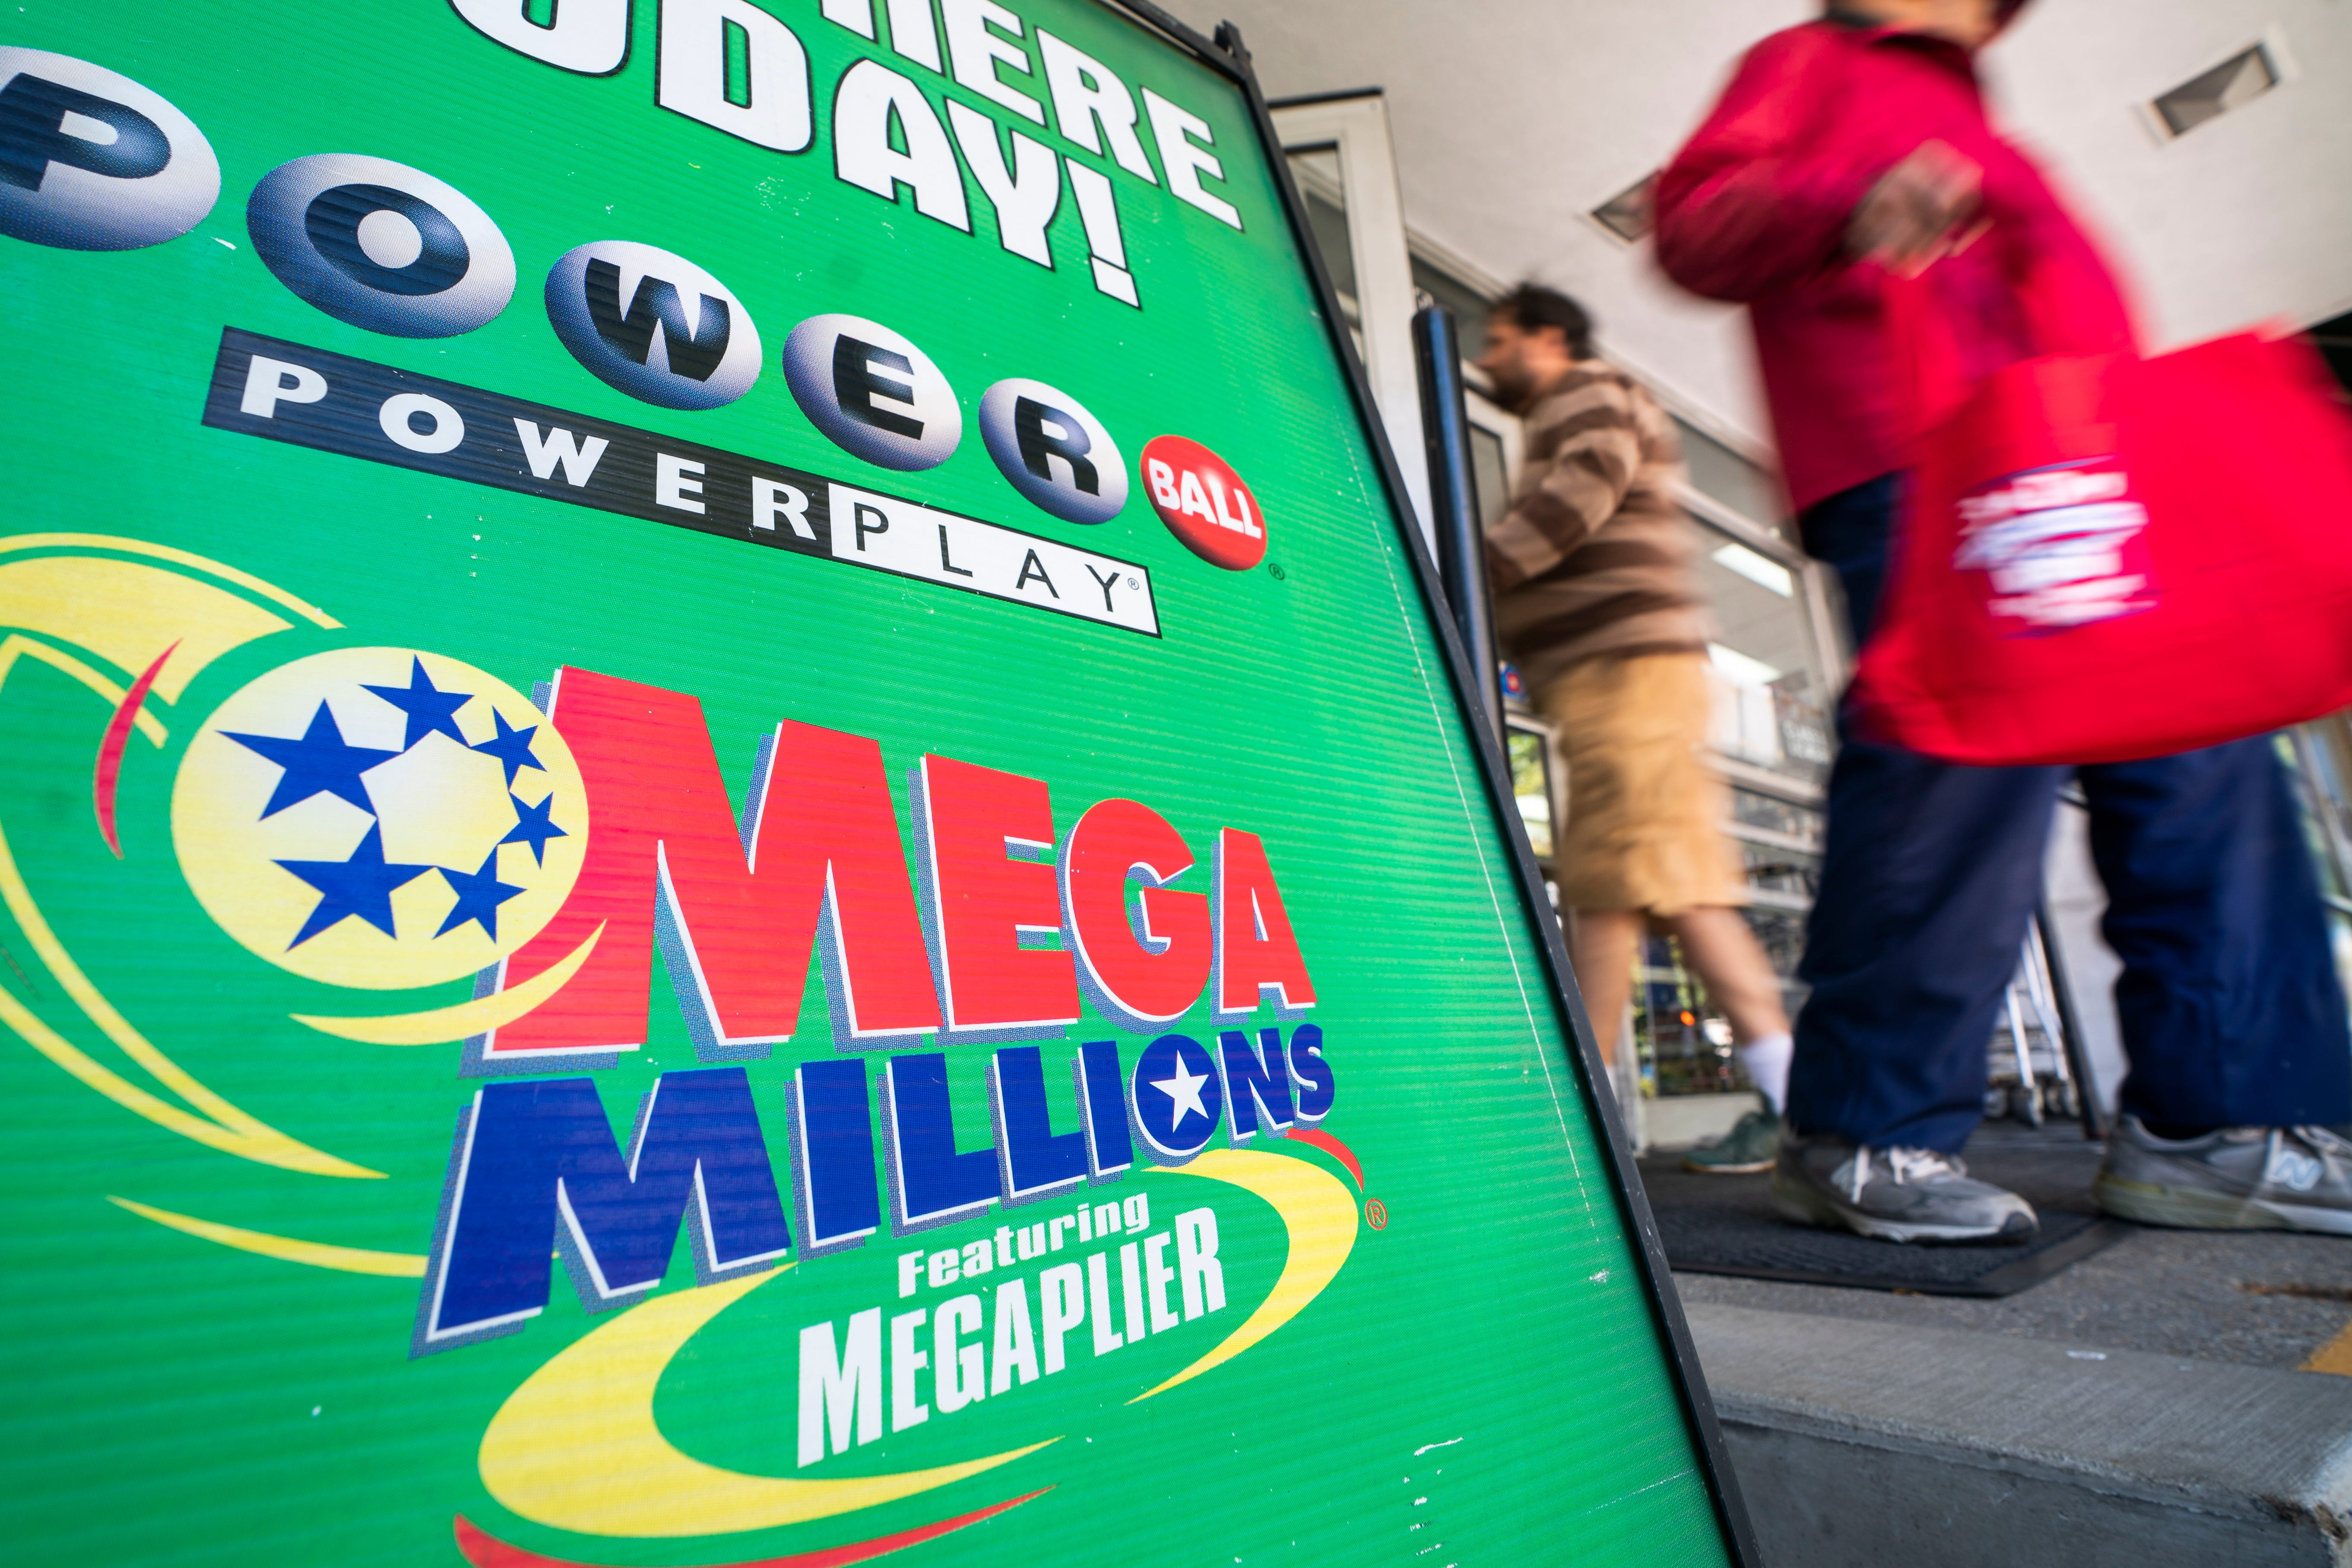 Ca lottery replay prizes for mega